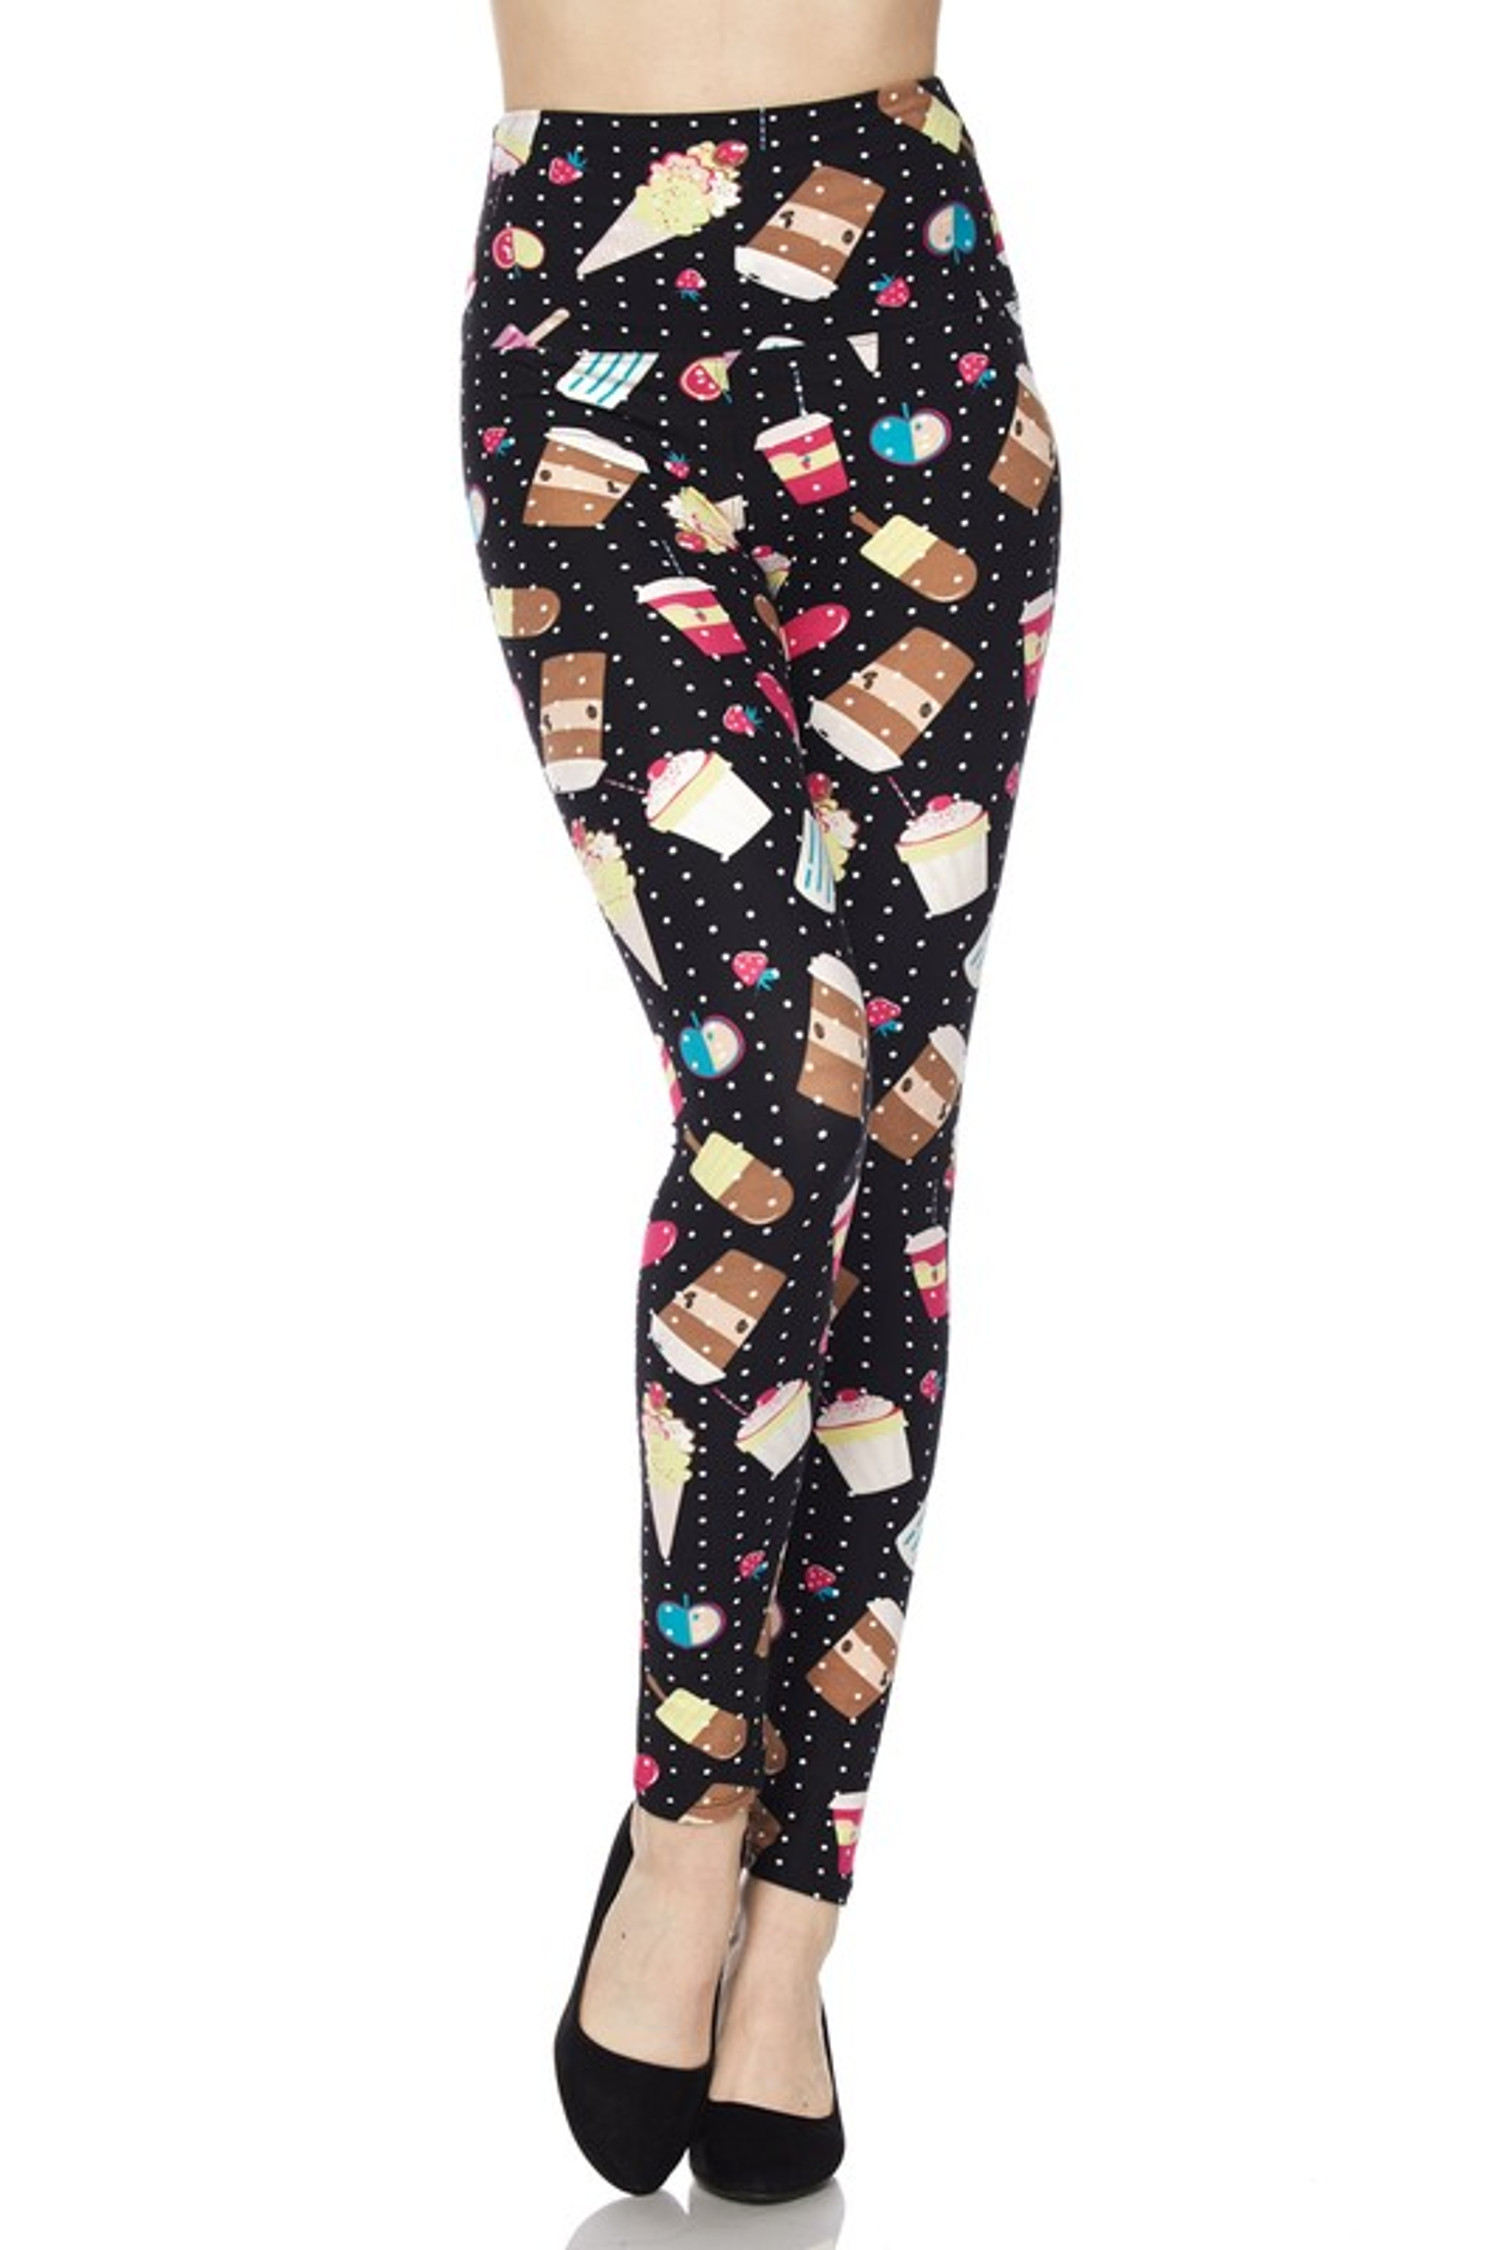 Summer Treats High Waisted Leggings - White Mini Dots